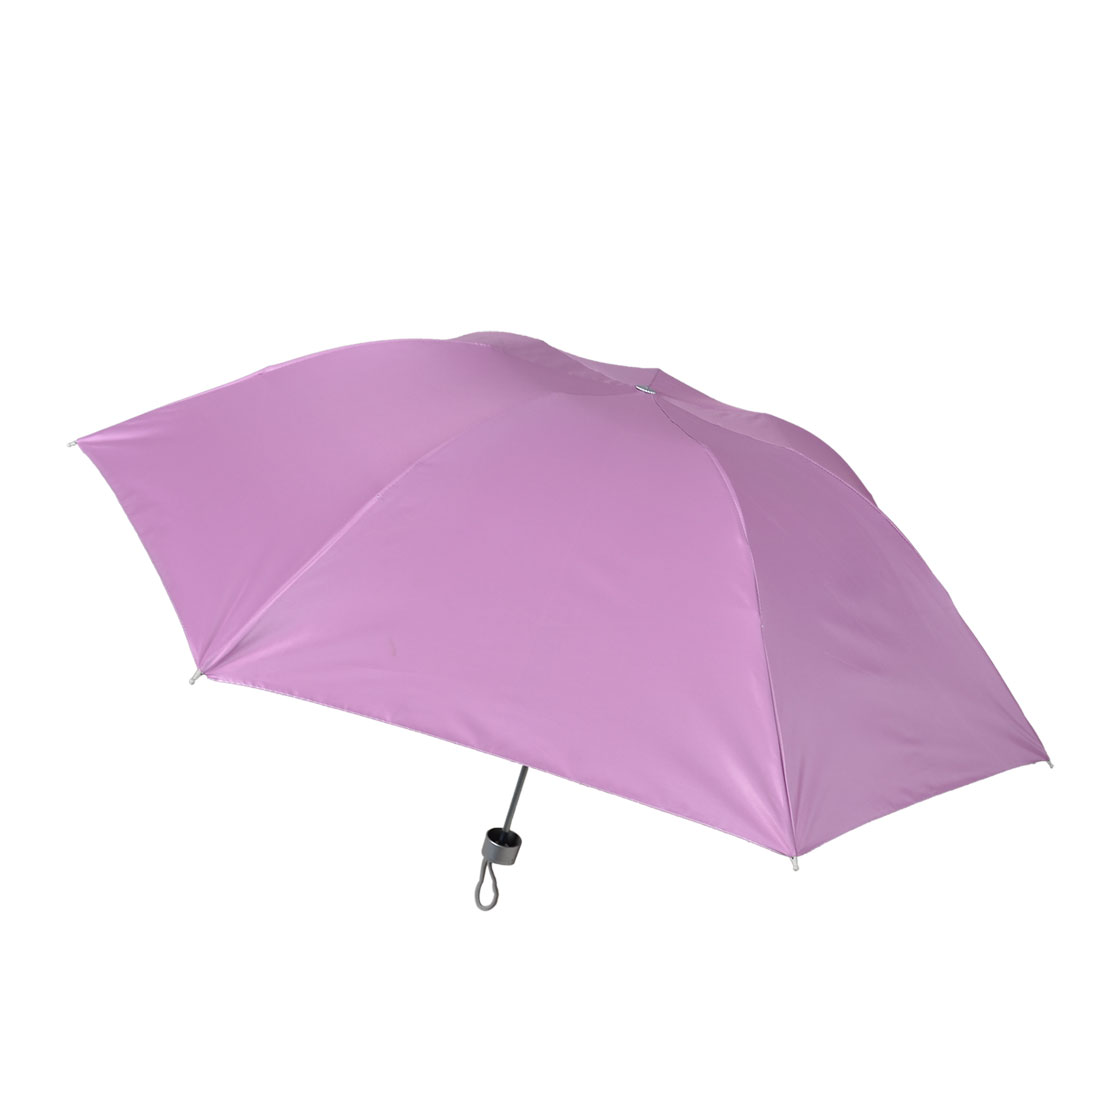 Outdoor 3 Sections Shaft Pink Silver Tone Rain Sun Umbrella w Pouch